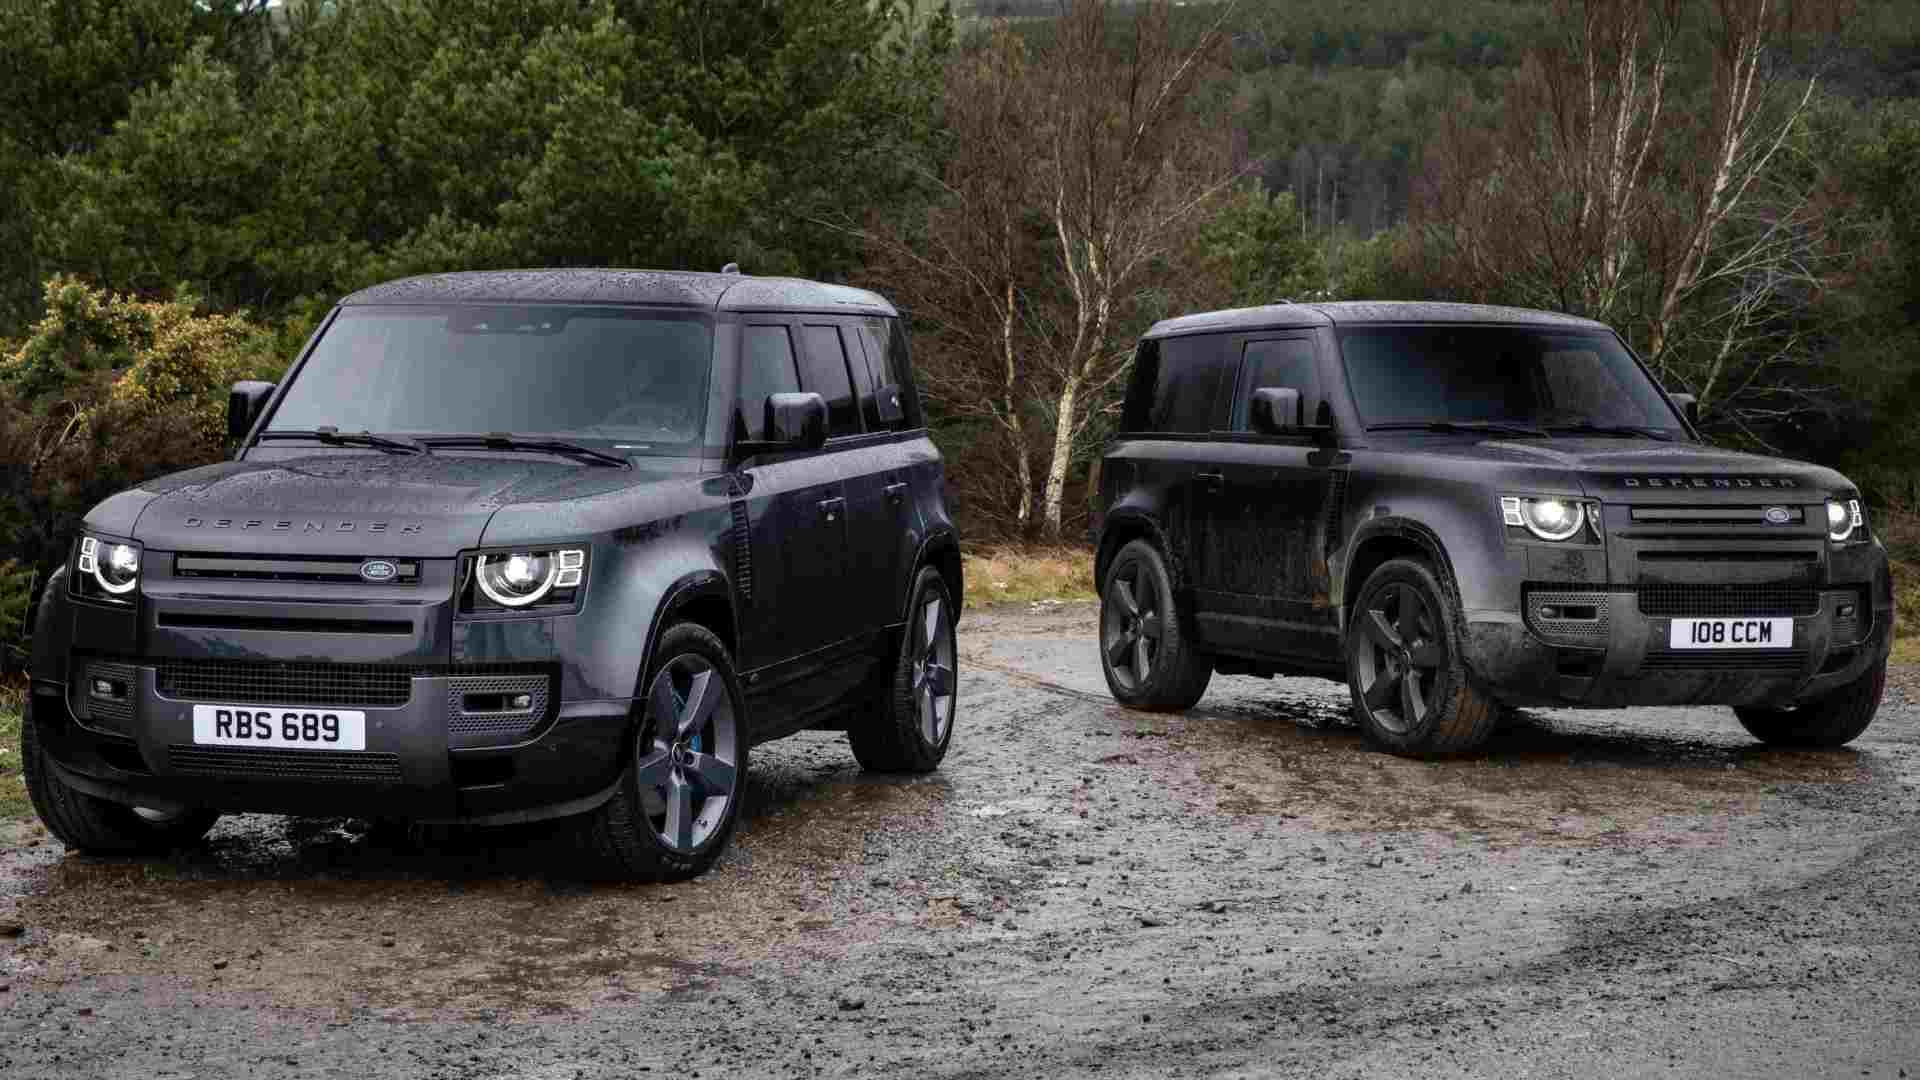 The 5.0-litre V8 engine will be available with both 90 and 110 body styles of the Land Rover Defender. Image: Land Rover